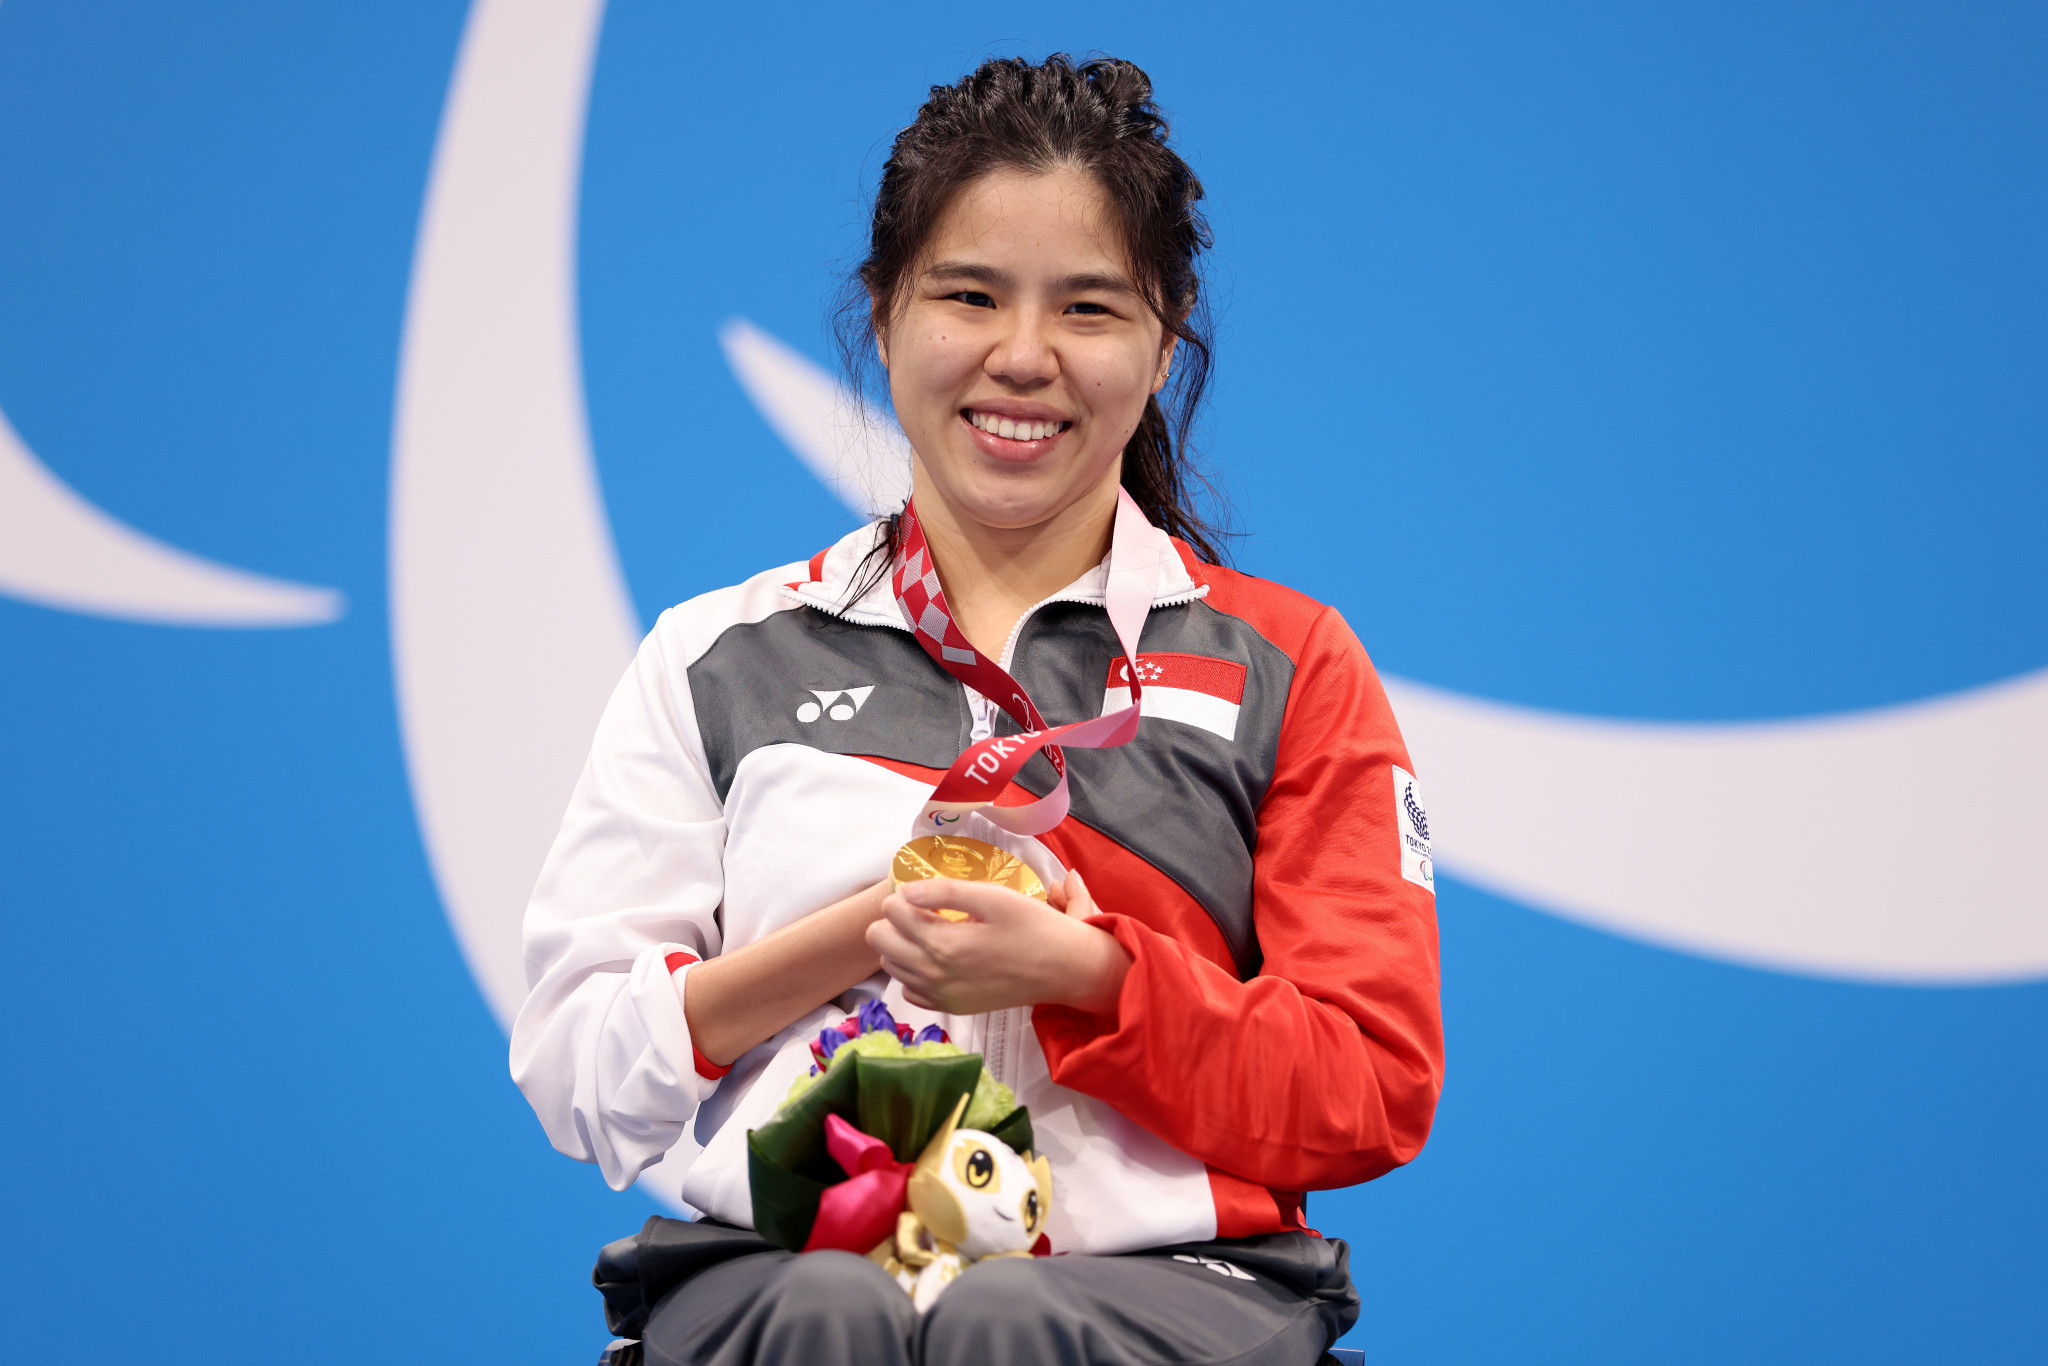 Singapore Government vows to work with relevant parties to increase Paralympic prize money